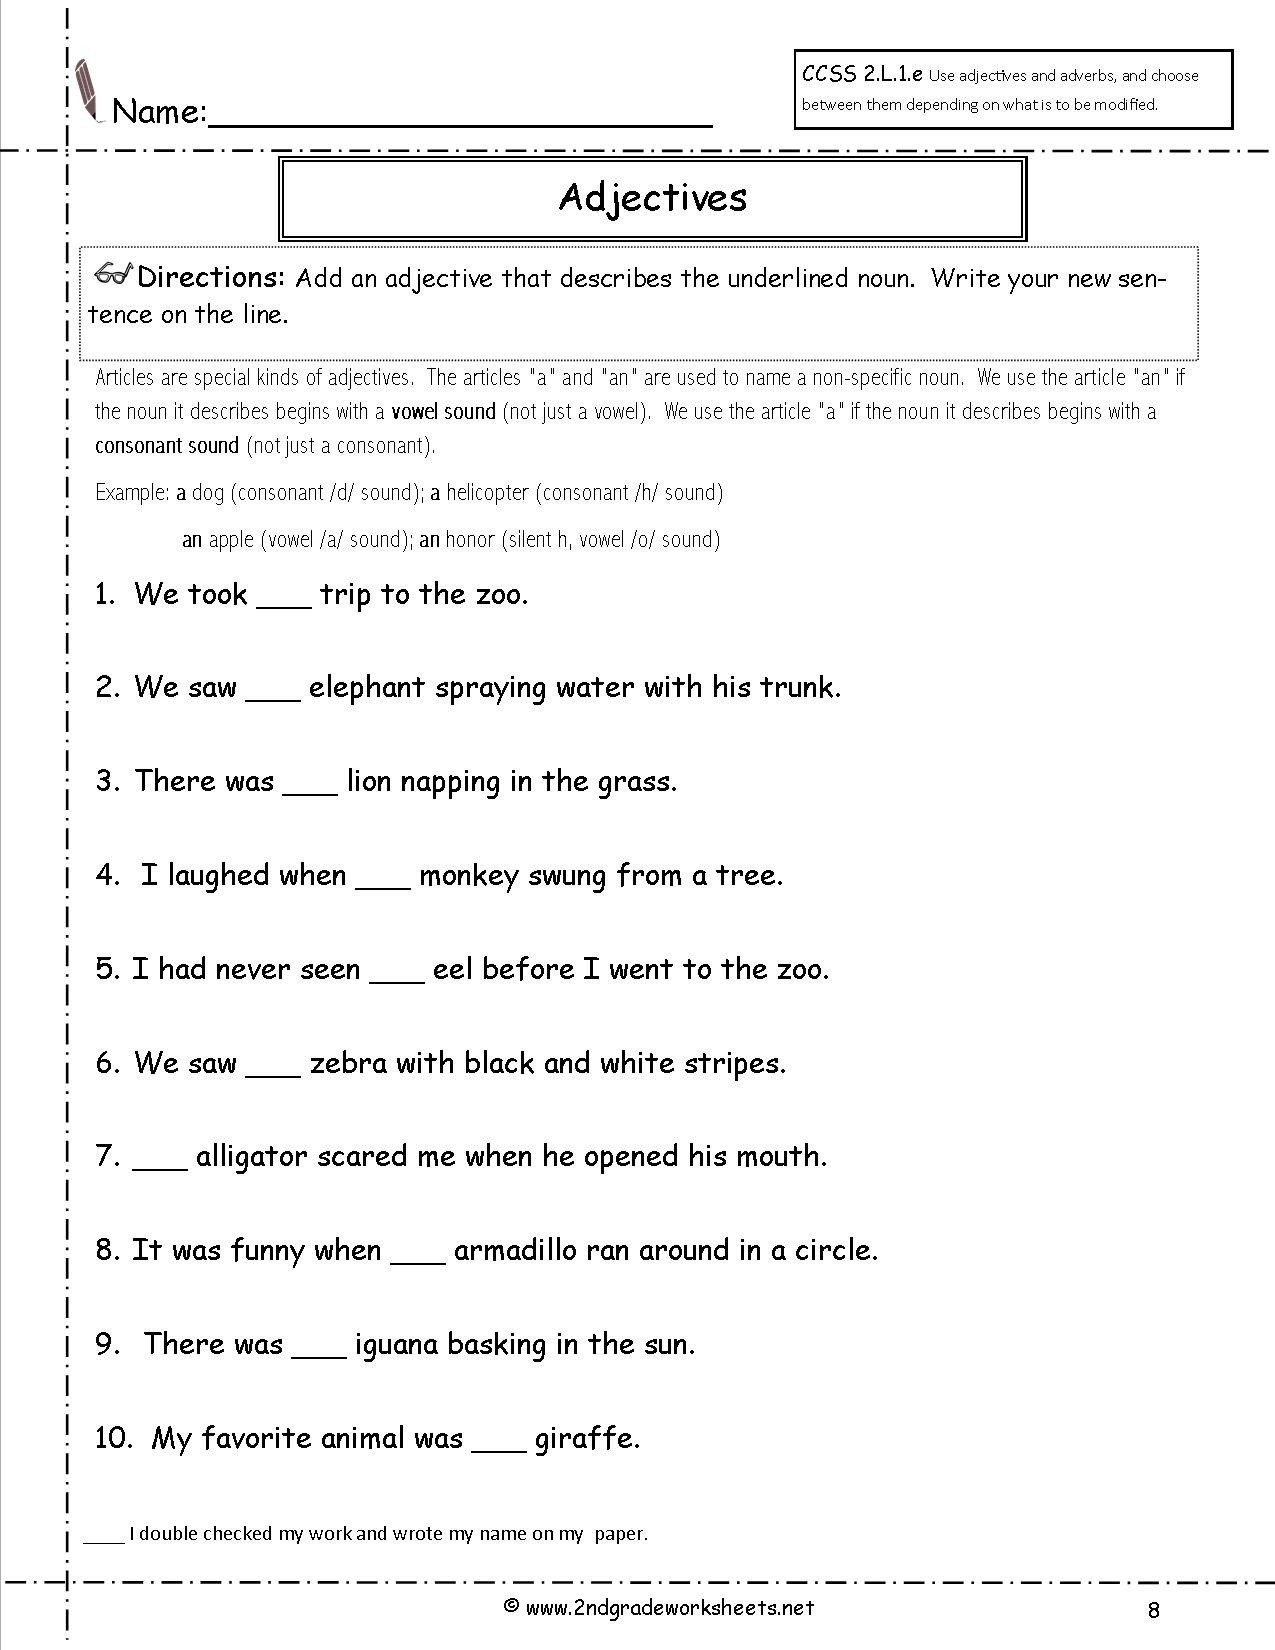 Adjectives Worksheet 2nd Grade Free Using Adjectives Worksheets